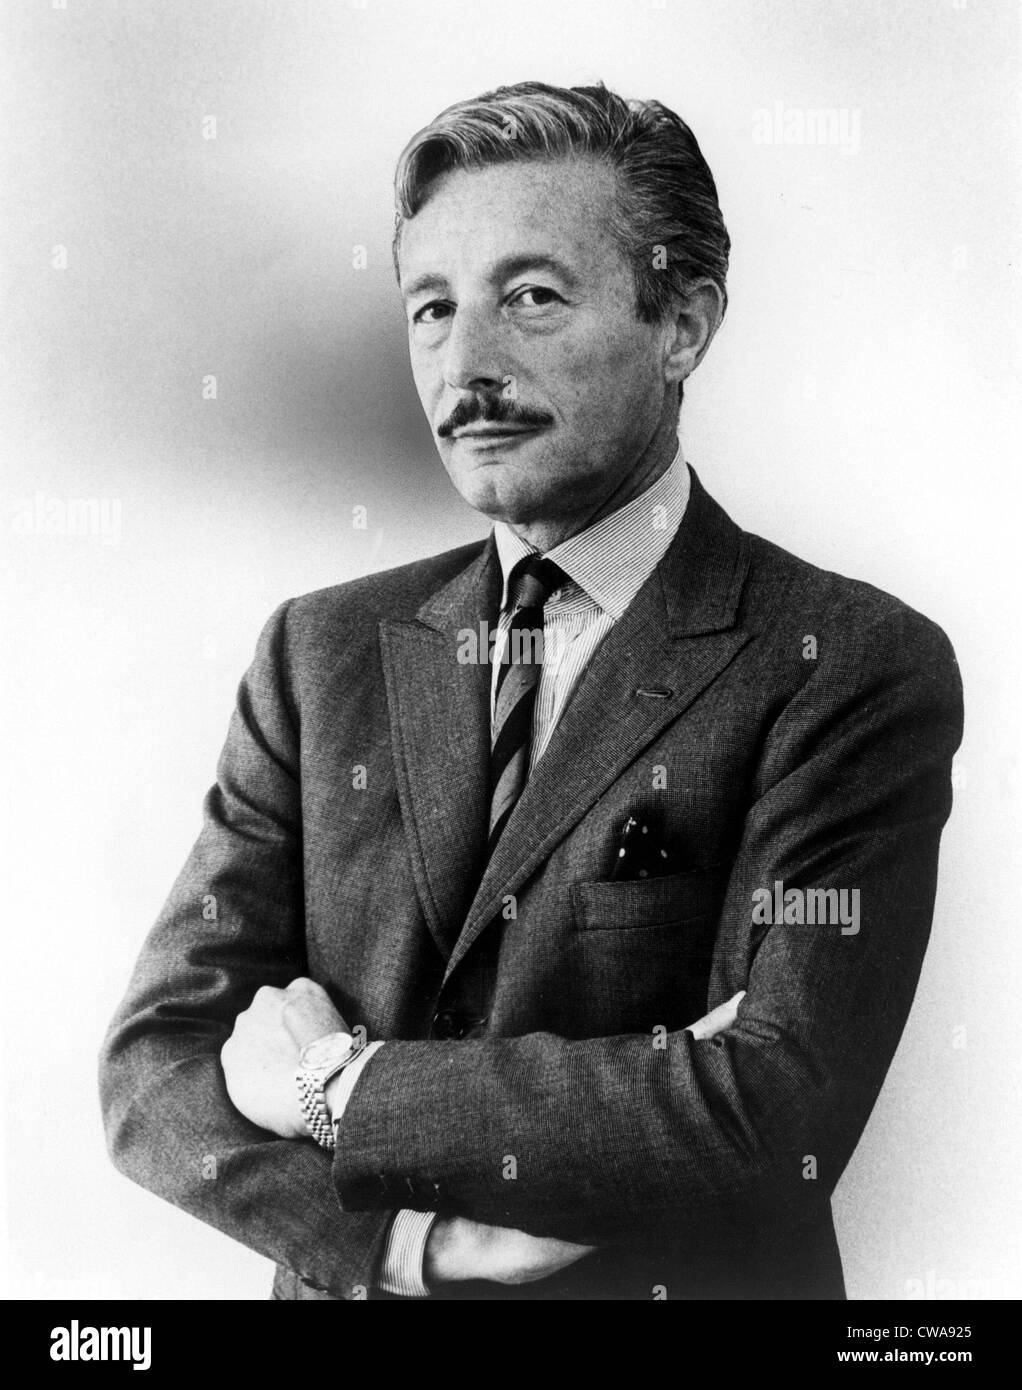 Oleg Cassini in a 1960s portrait. Courtesy: CSU Archives / Everett Collection - Stock Image